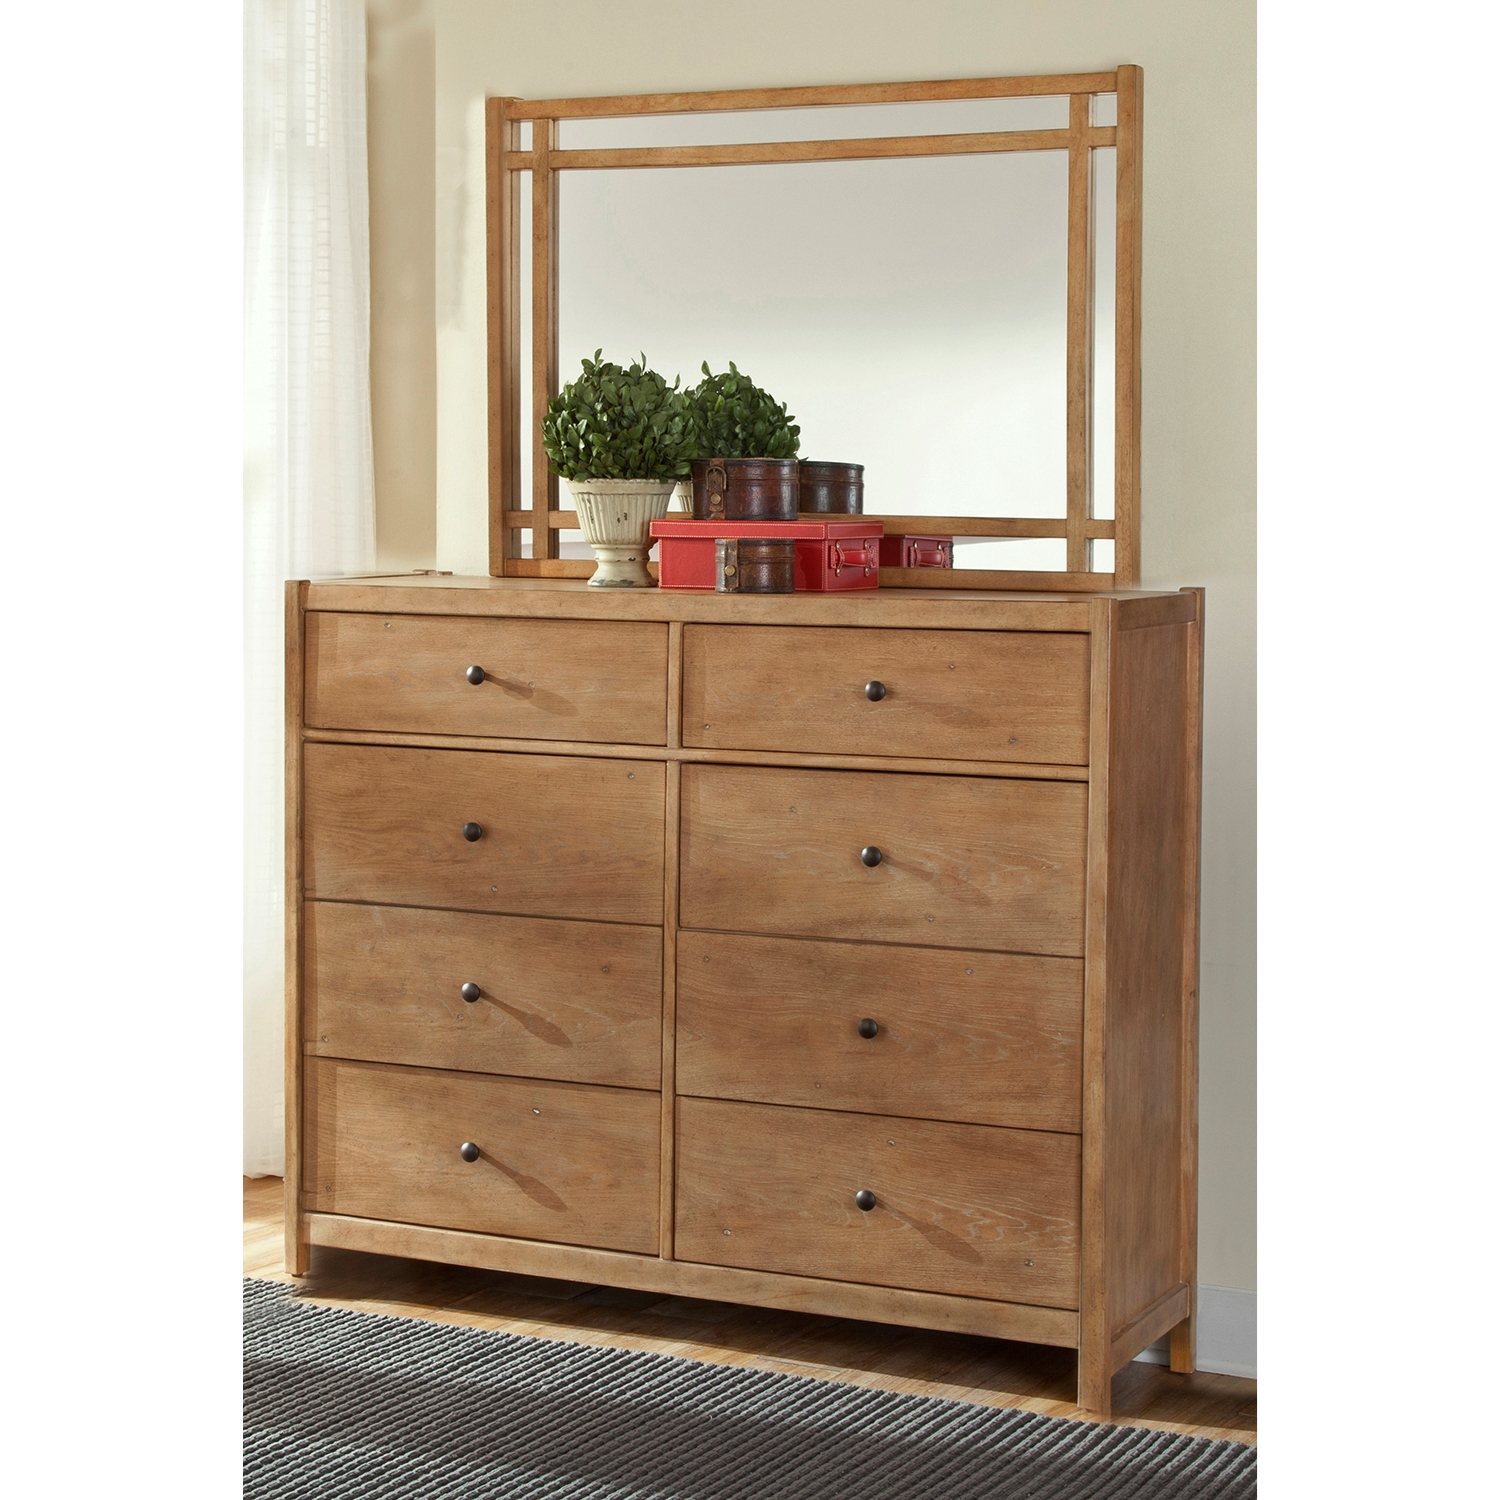 Natural Elements 8-Drawer Dresser in Soft Driftwood with Off-White Glaze - AW-1000-280